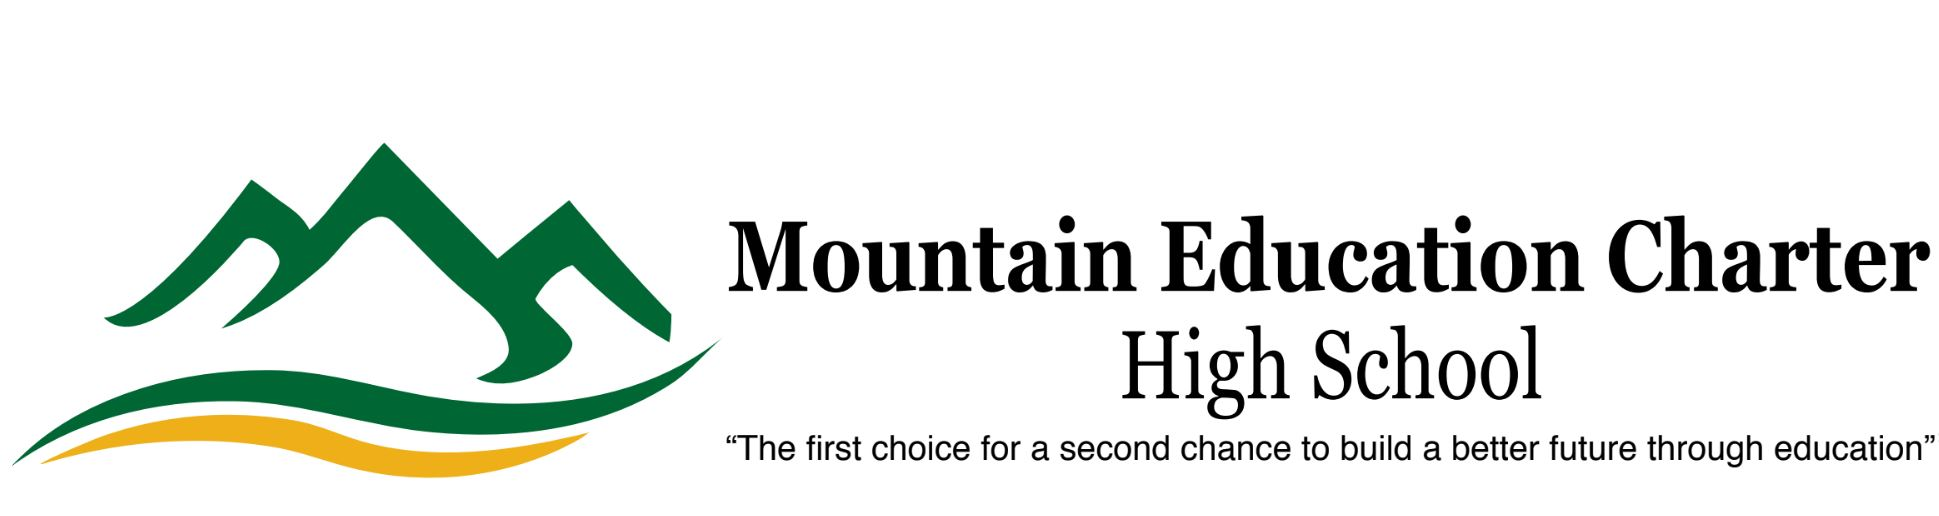 Career Clusters Mountain Education Charter High School